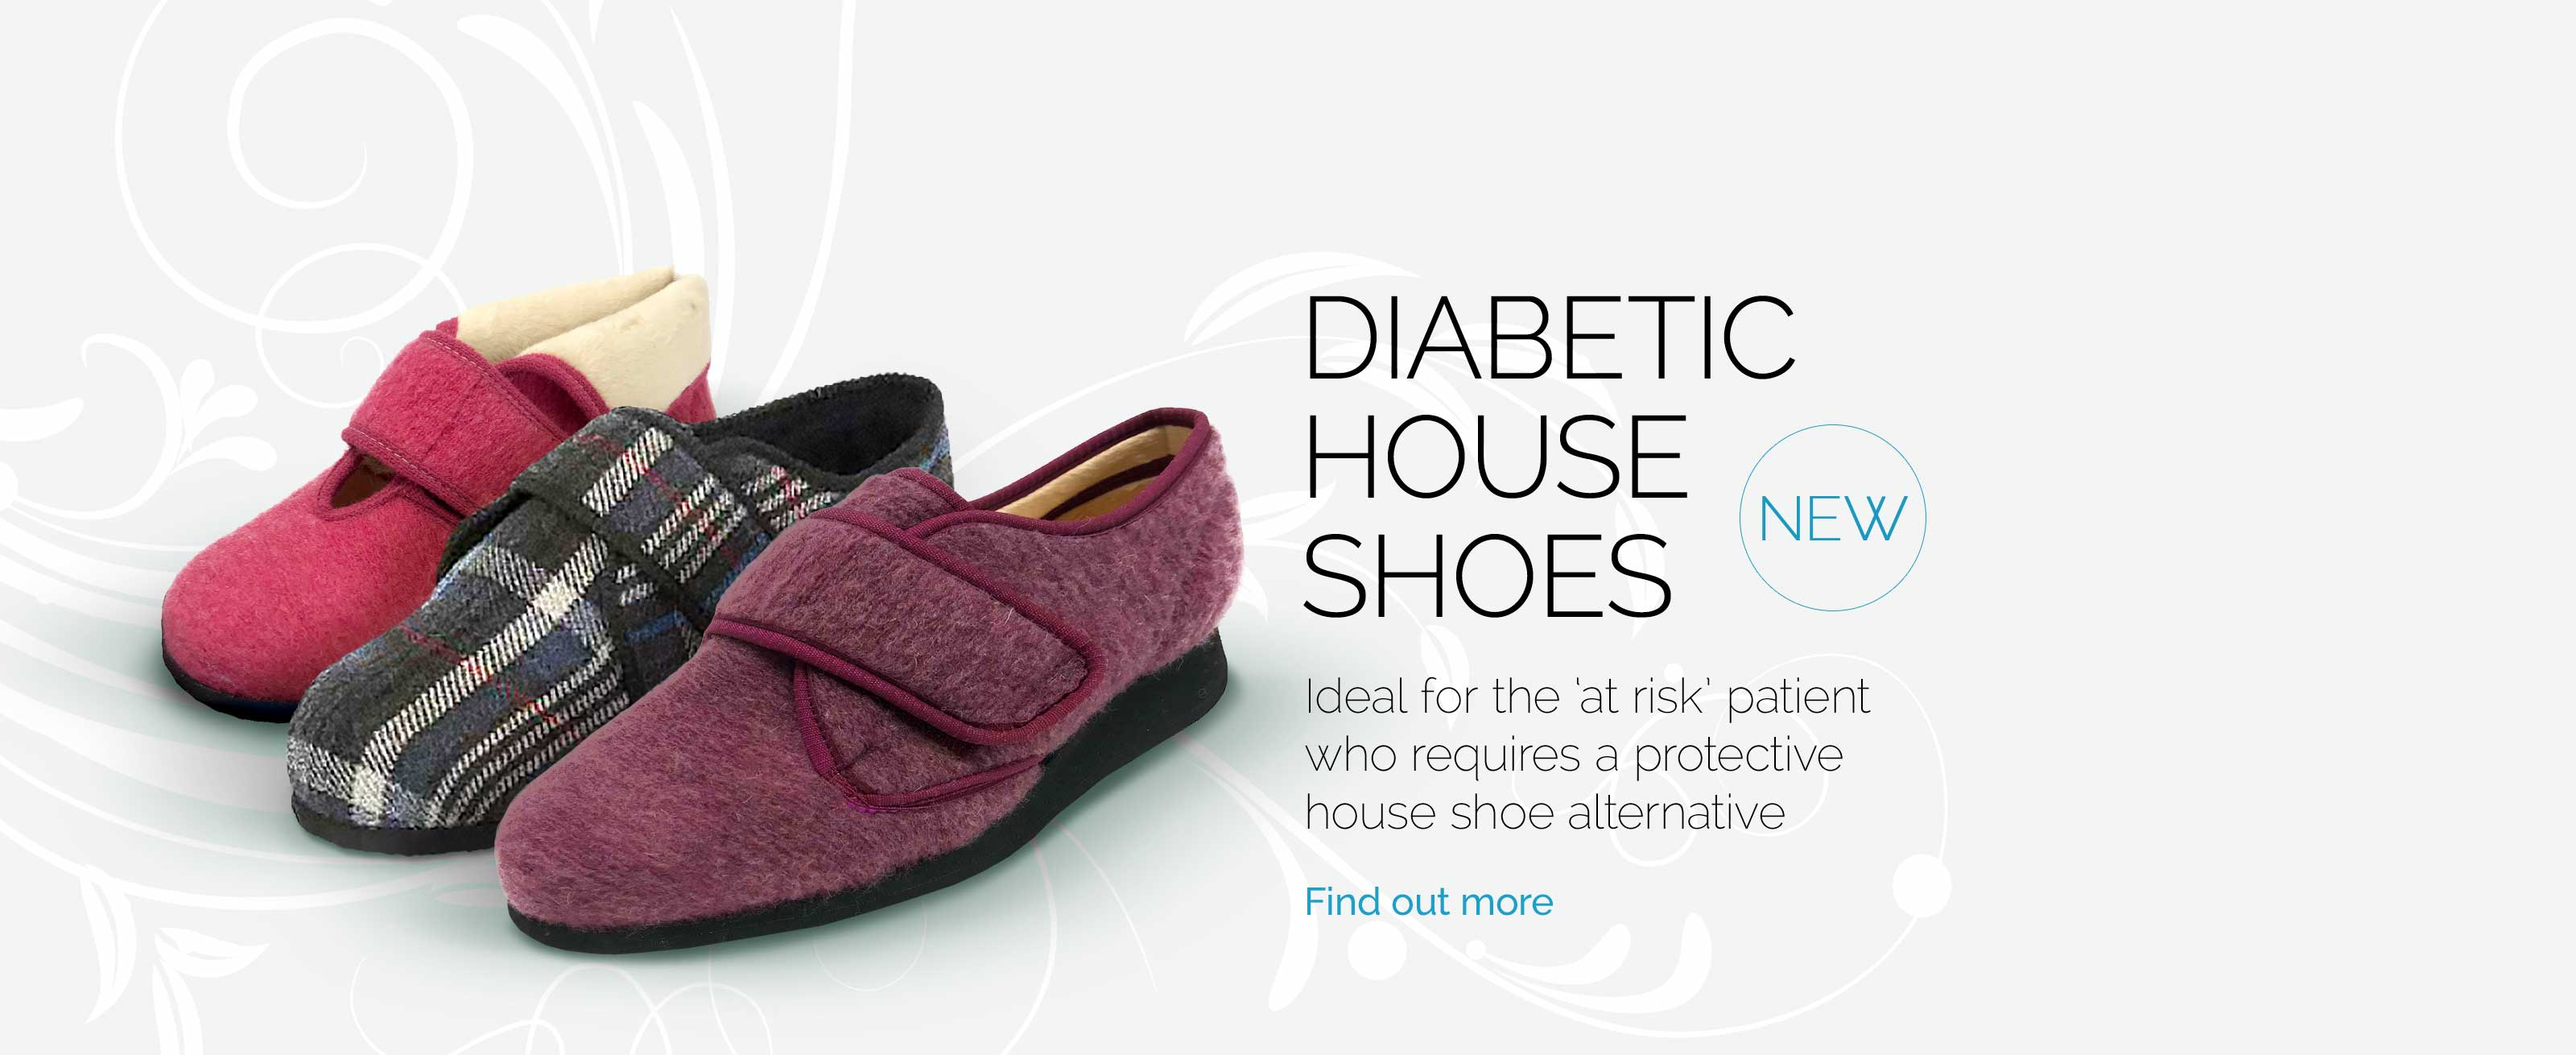 Diabetic house shoes